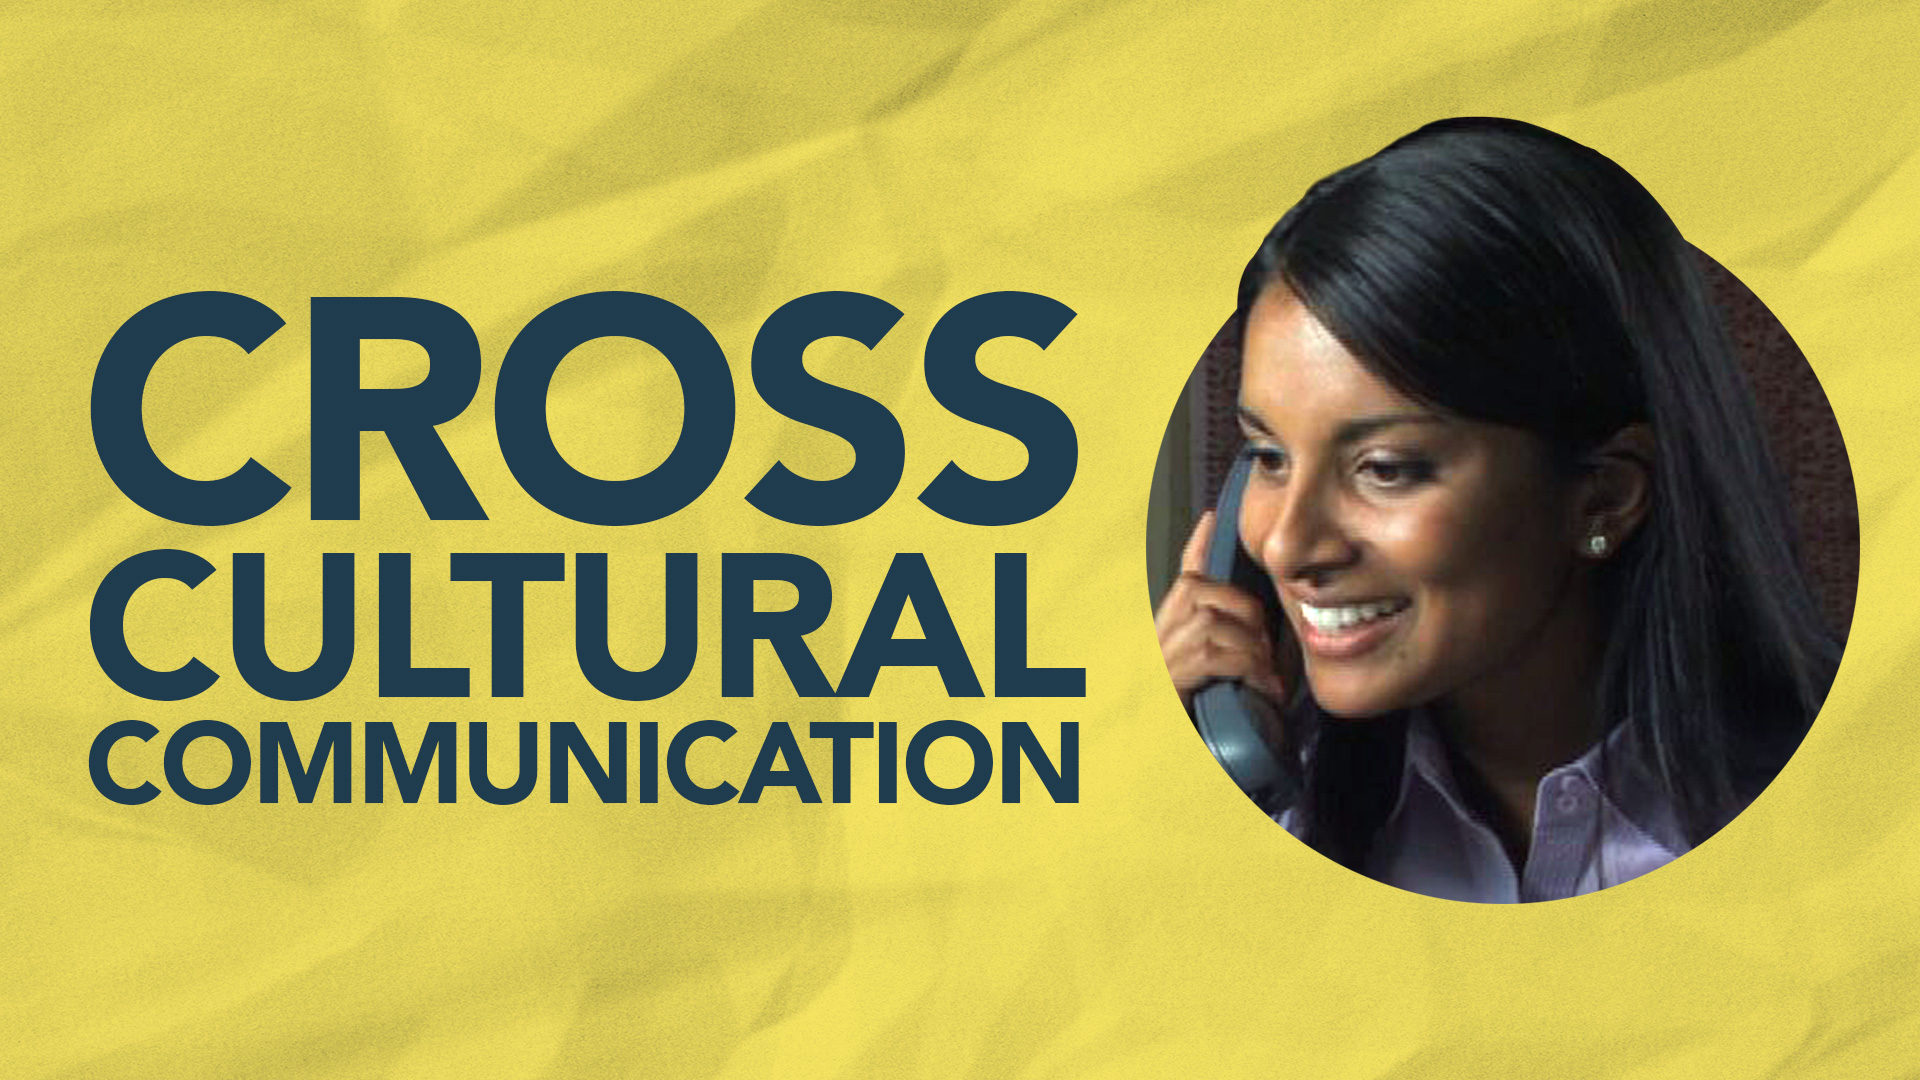 Cross Cultural Communication video